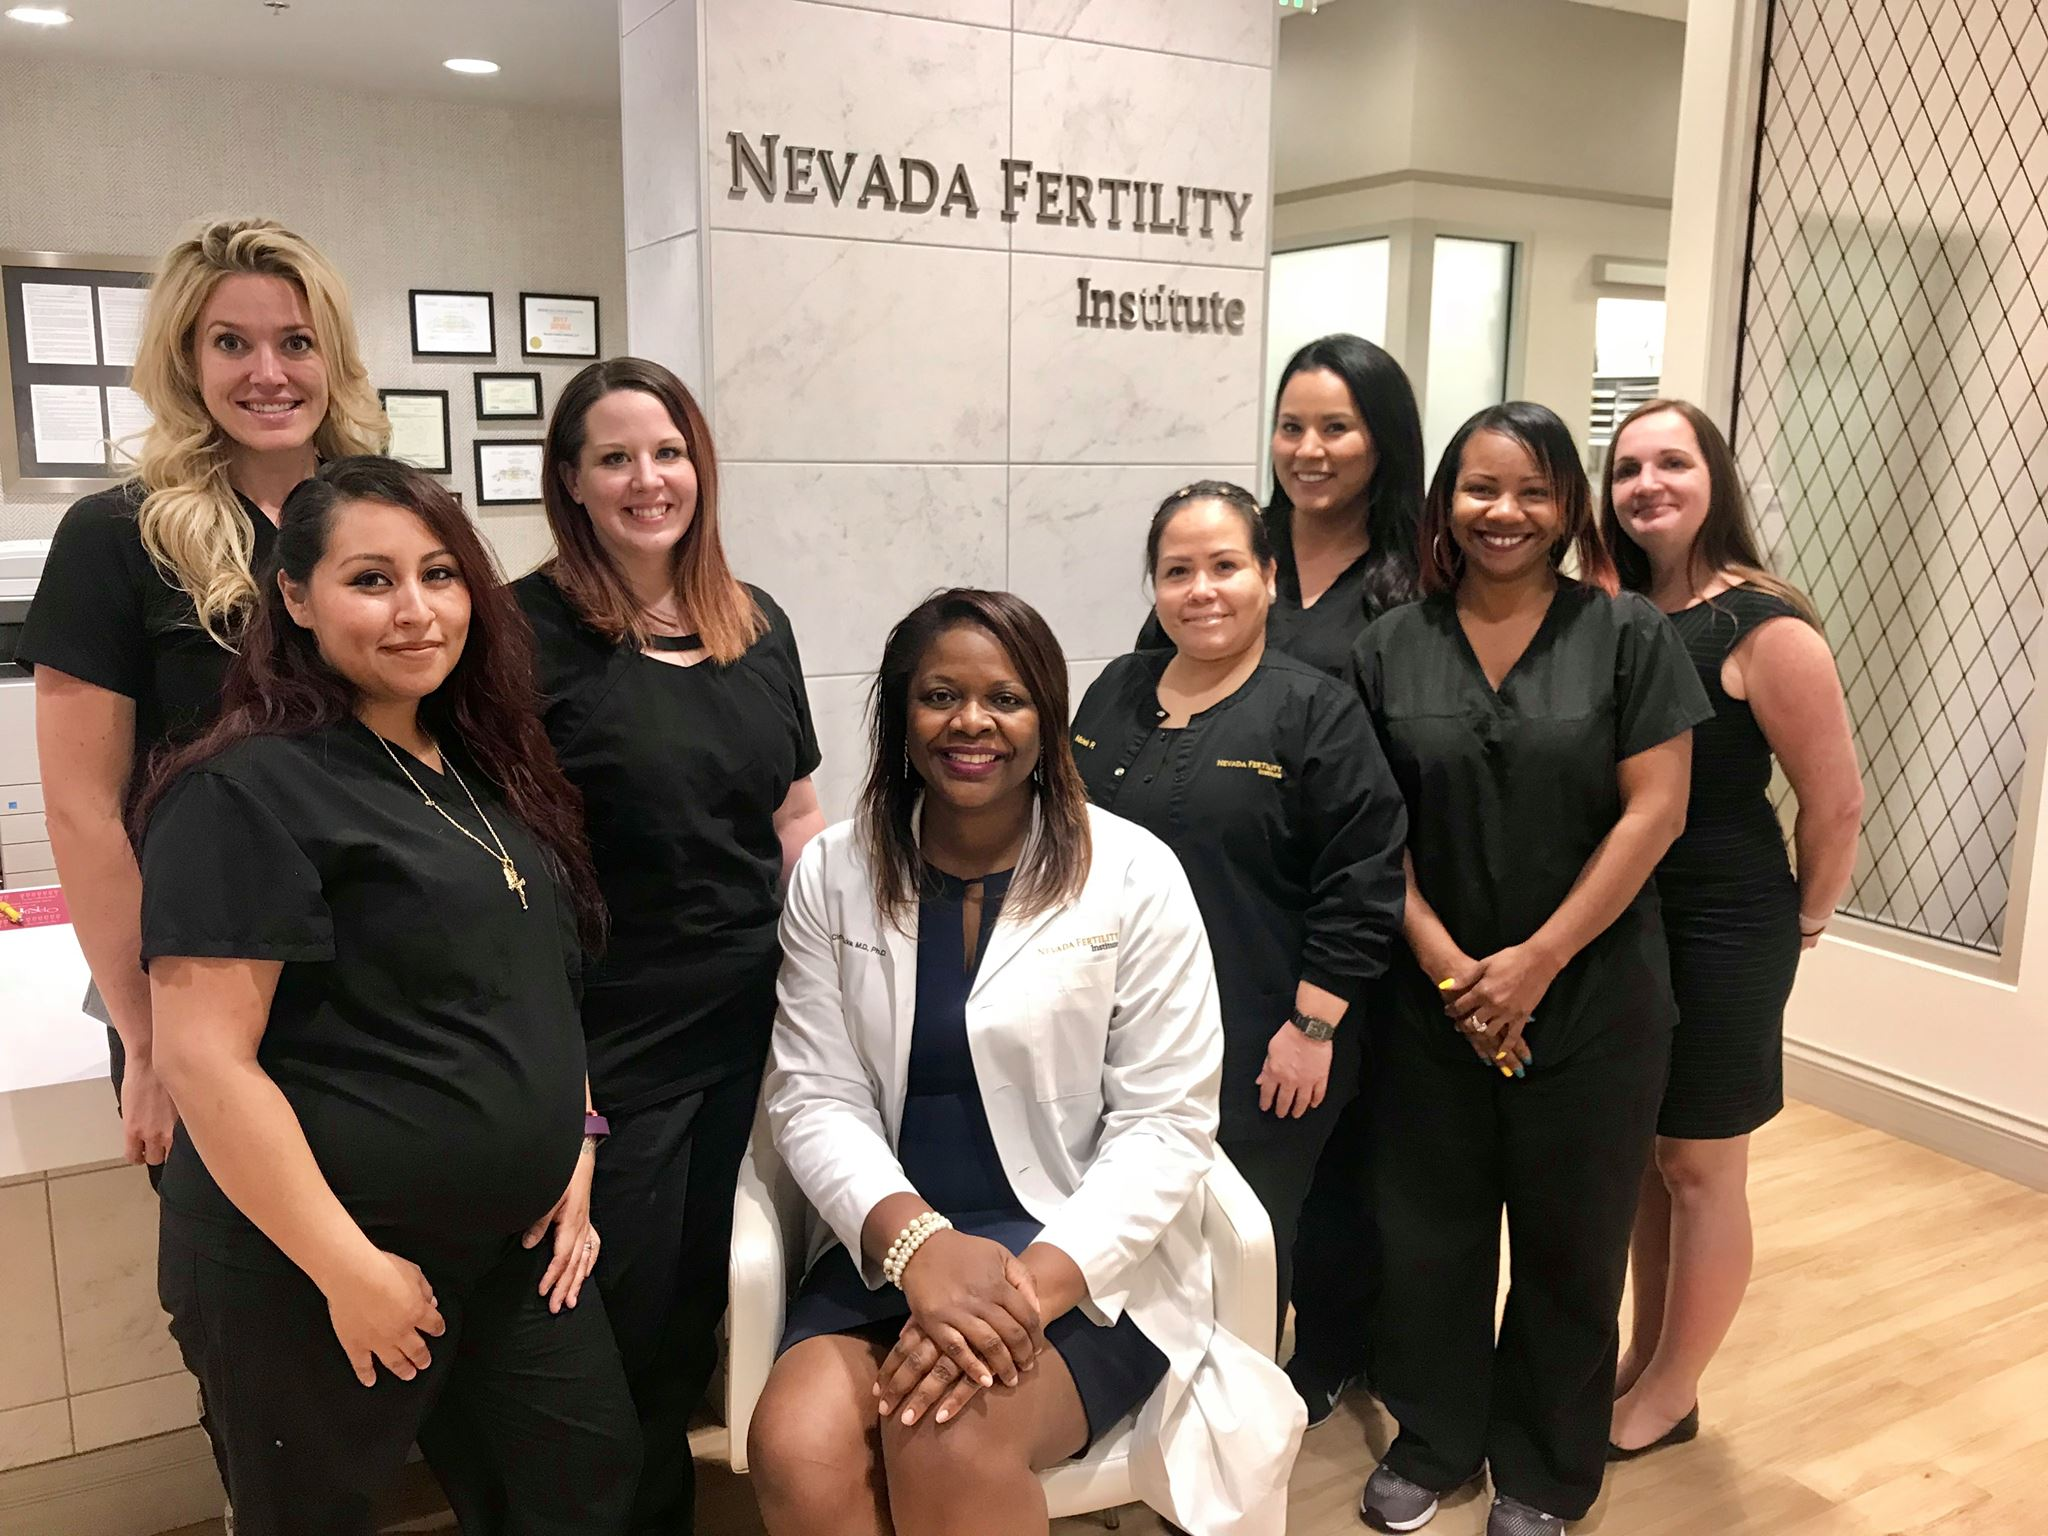 NEVADA FERTILITY INSTITUTE